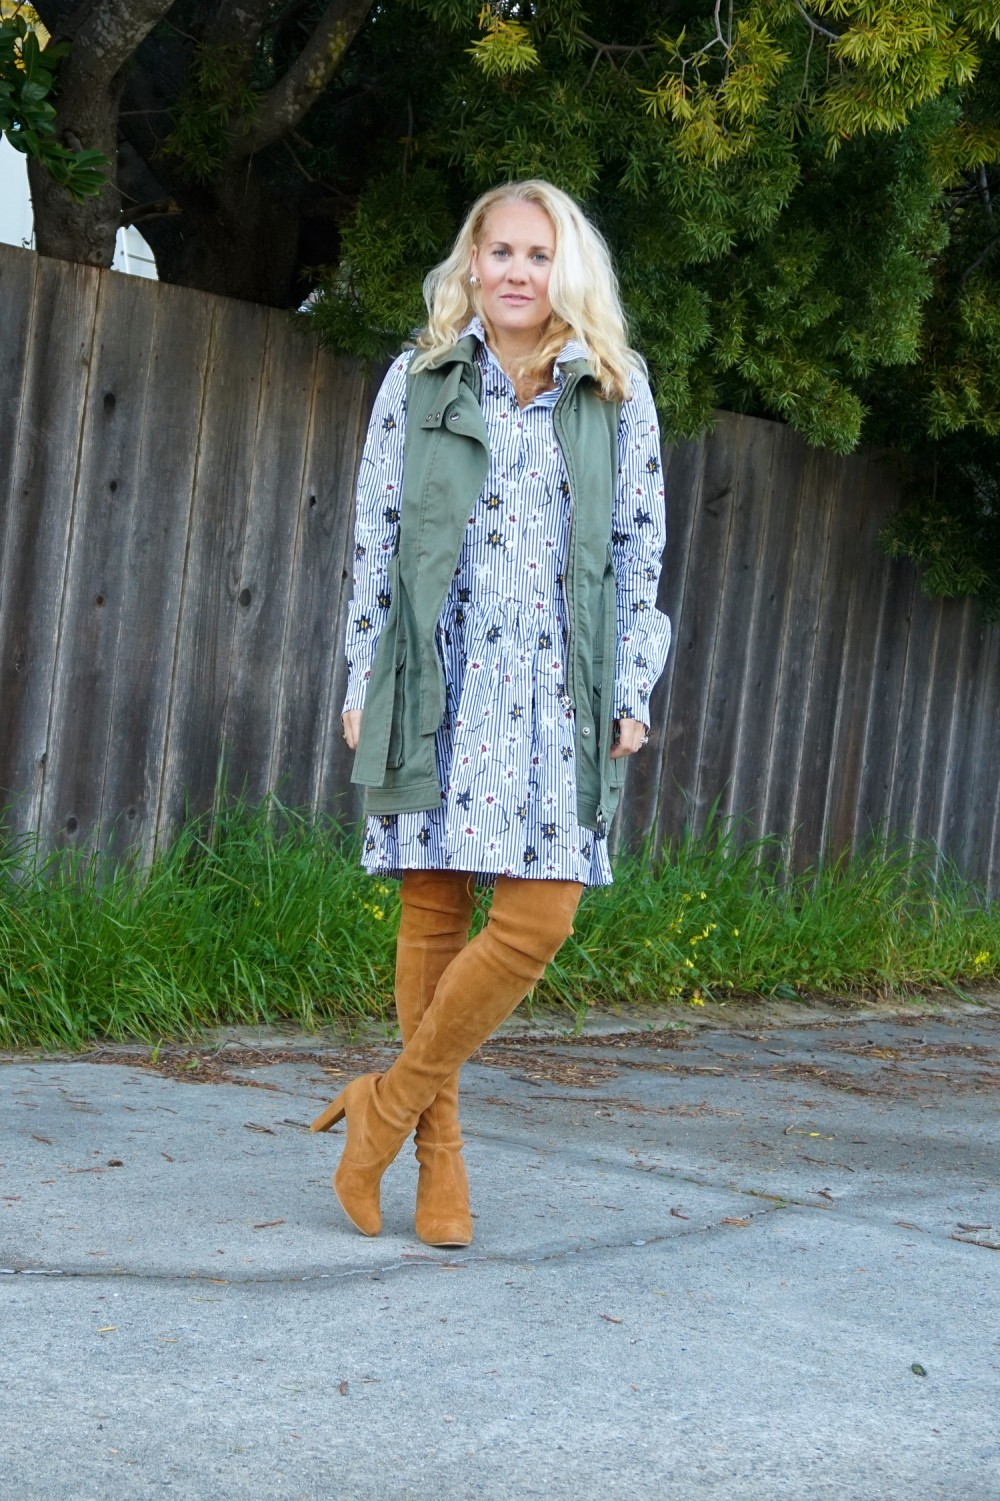 Opening Ceremony Pinstripe and Floral Shirtdress-Spring Style-Outfit Inspiration-Bay Area Fashion Blogger-Stuart Weitzman-Highland Boots-Have Need Want 3